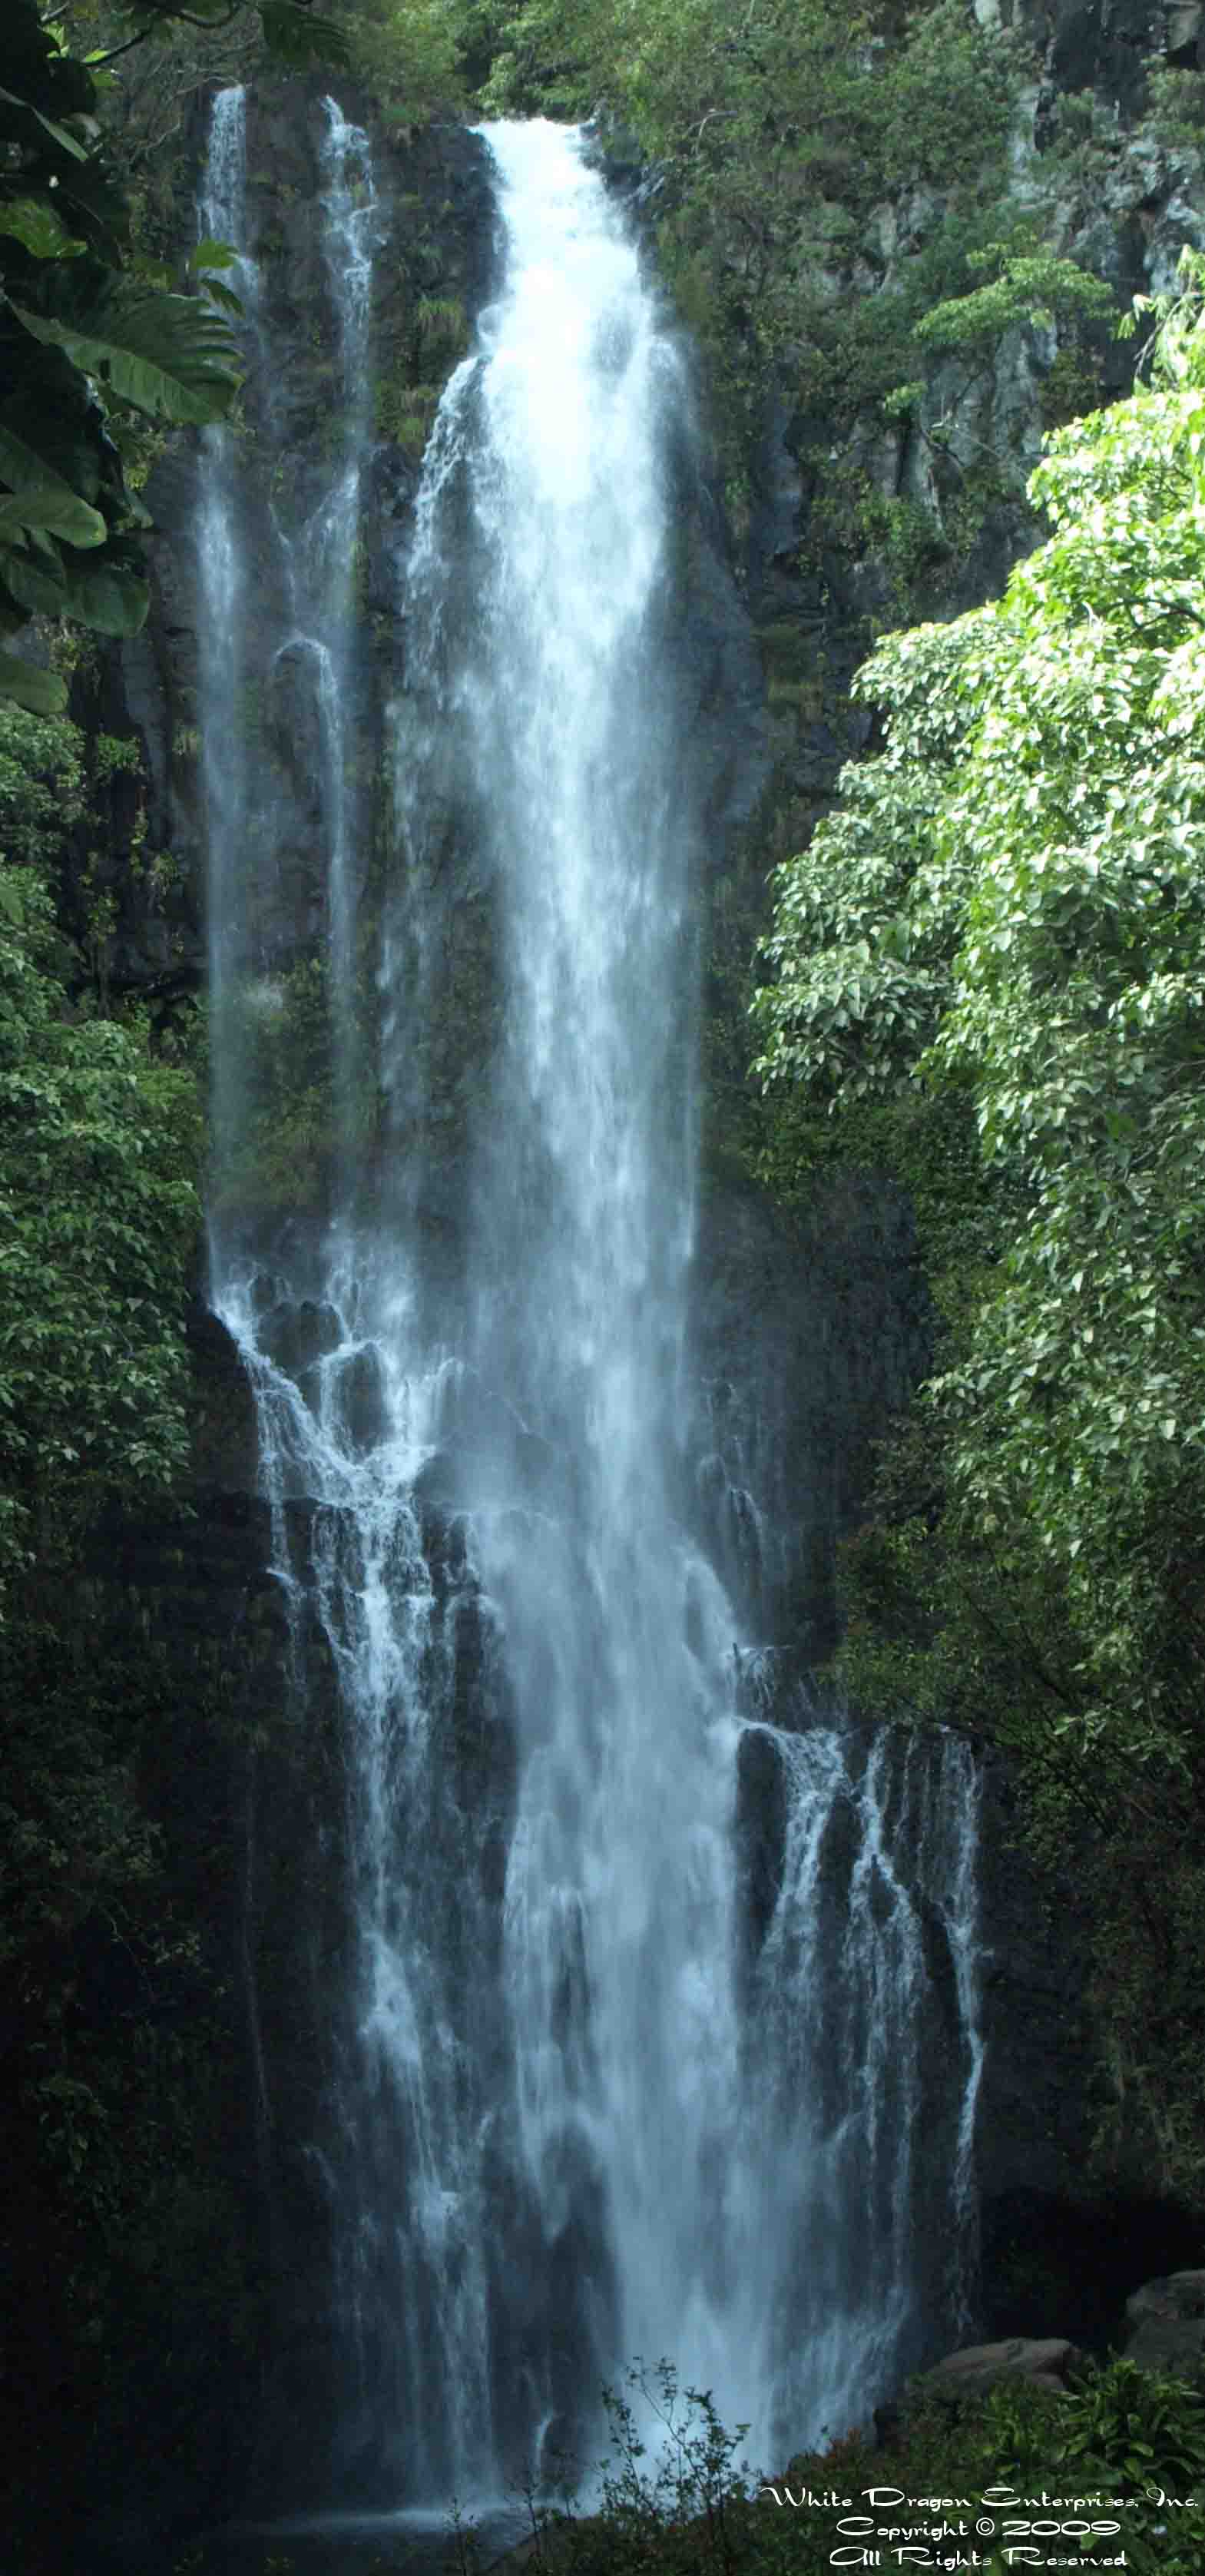 White Dragon Waterfall